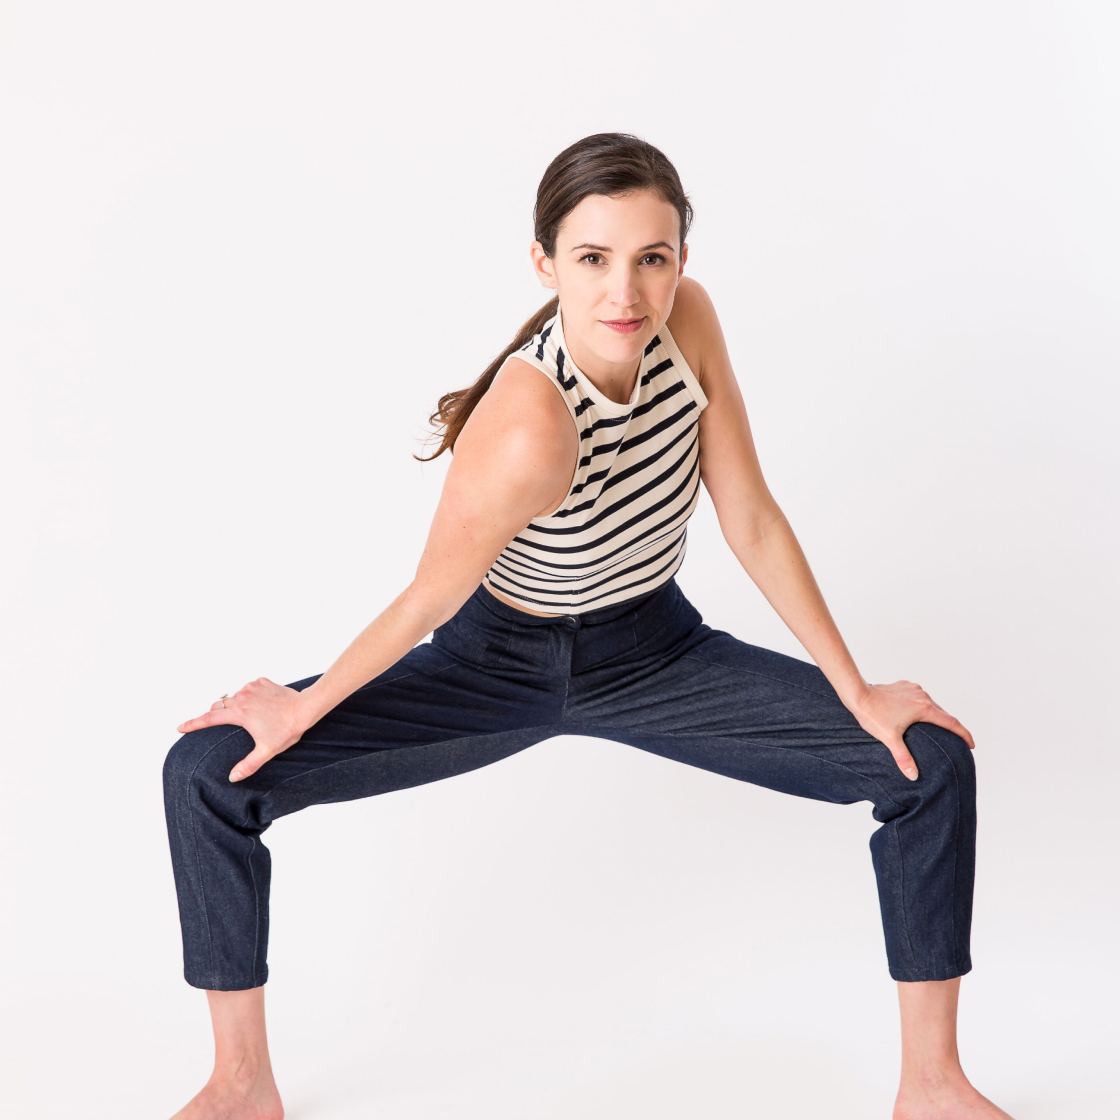 Yoga With Adriene Adriene Mishler Yoga Teacher Actress Texan